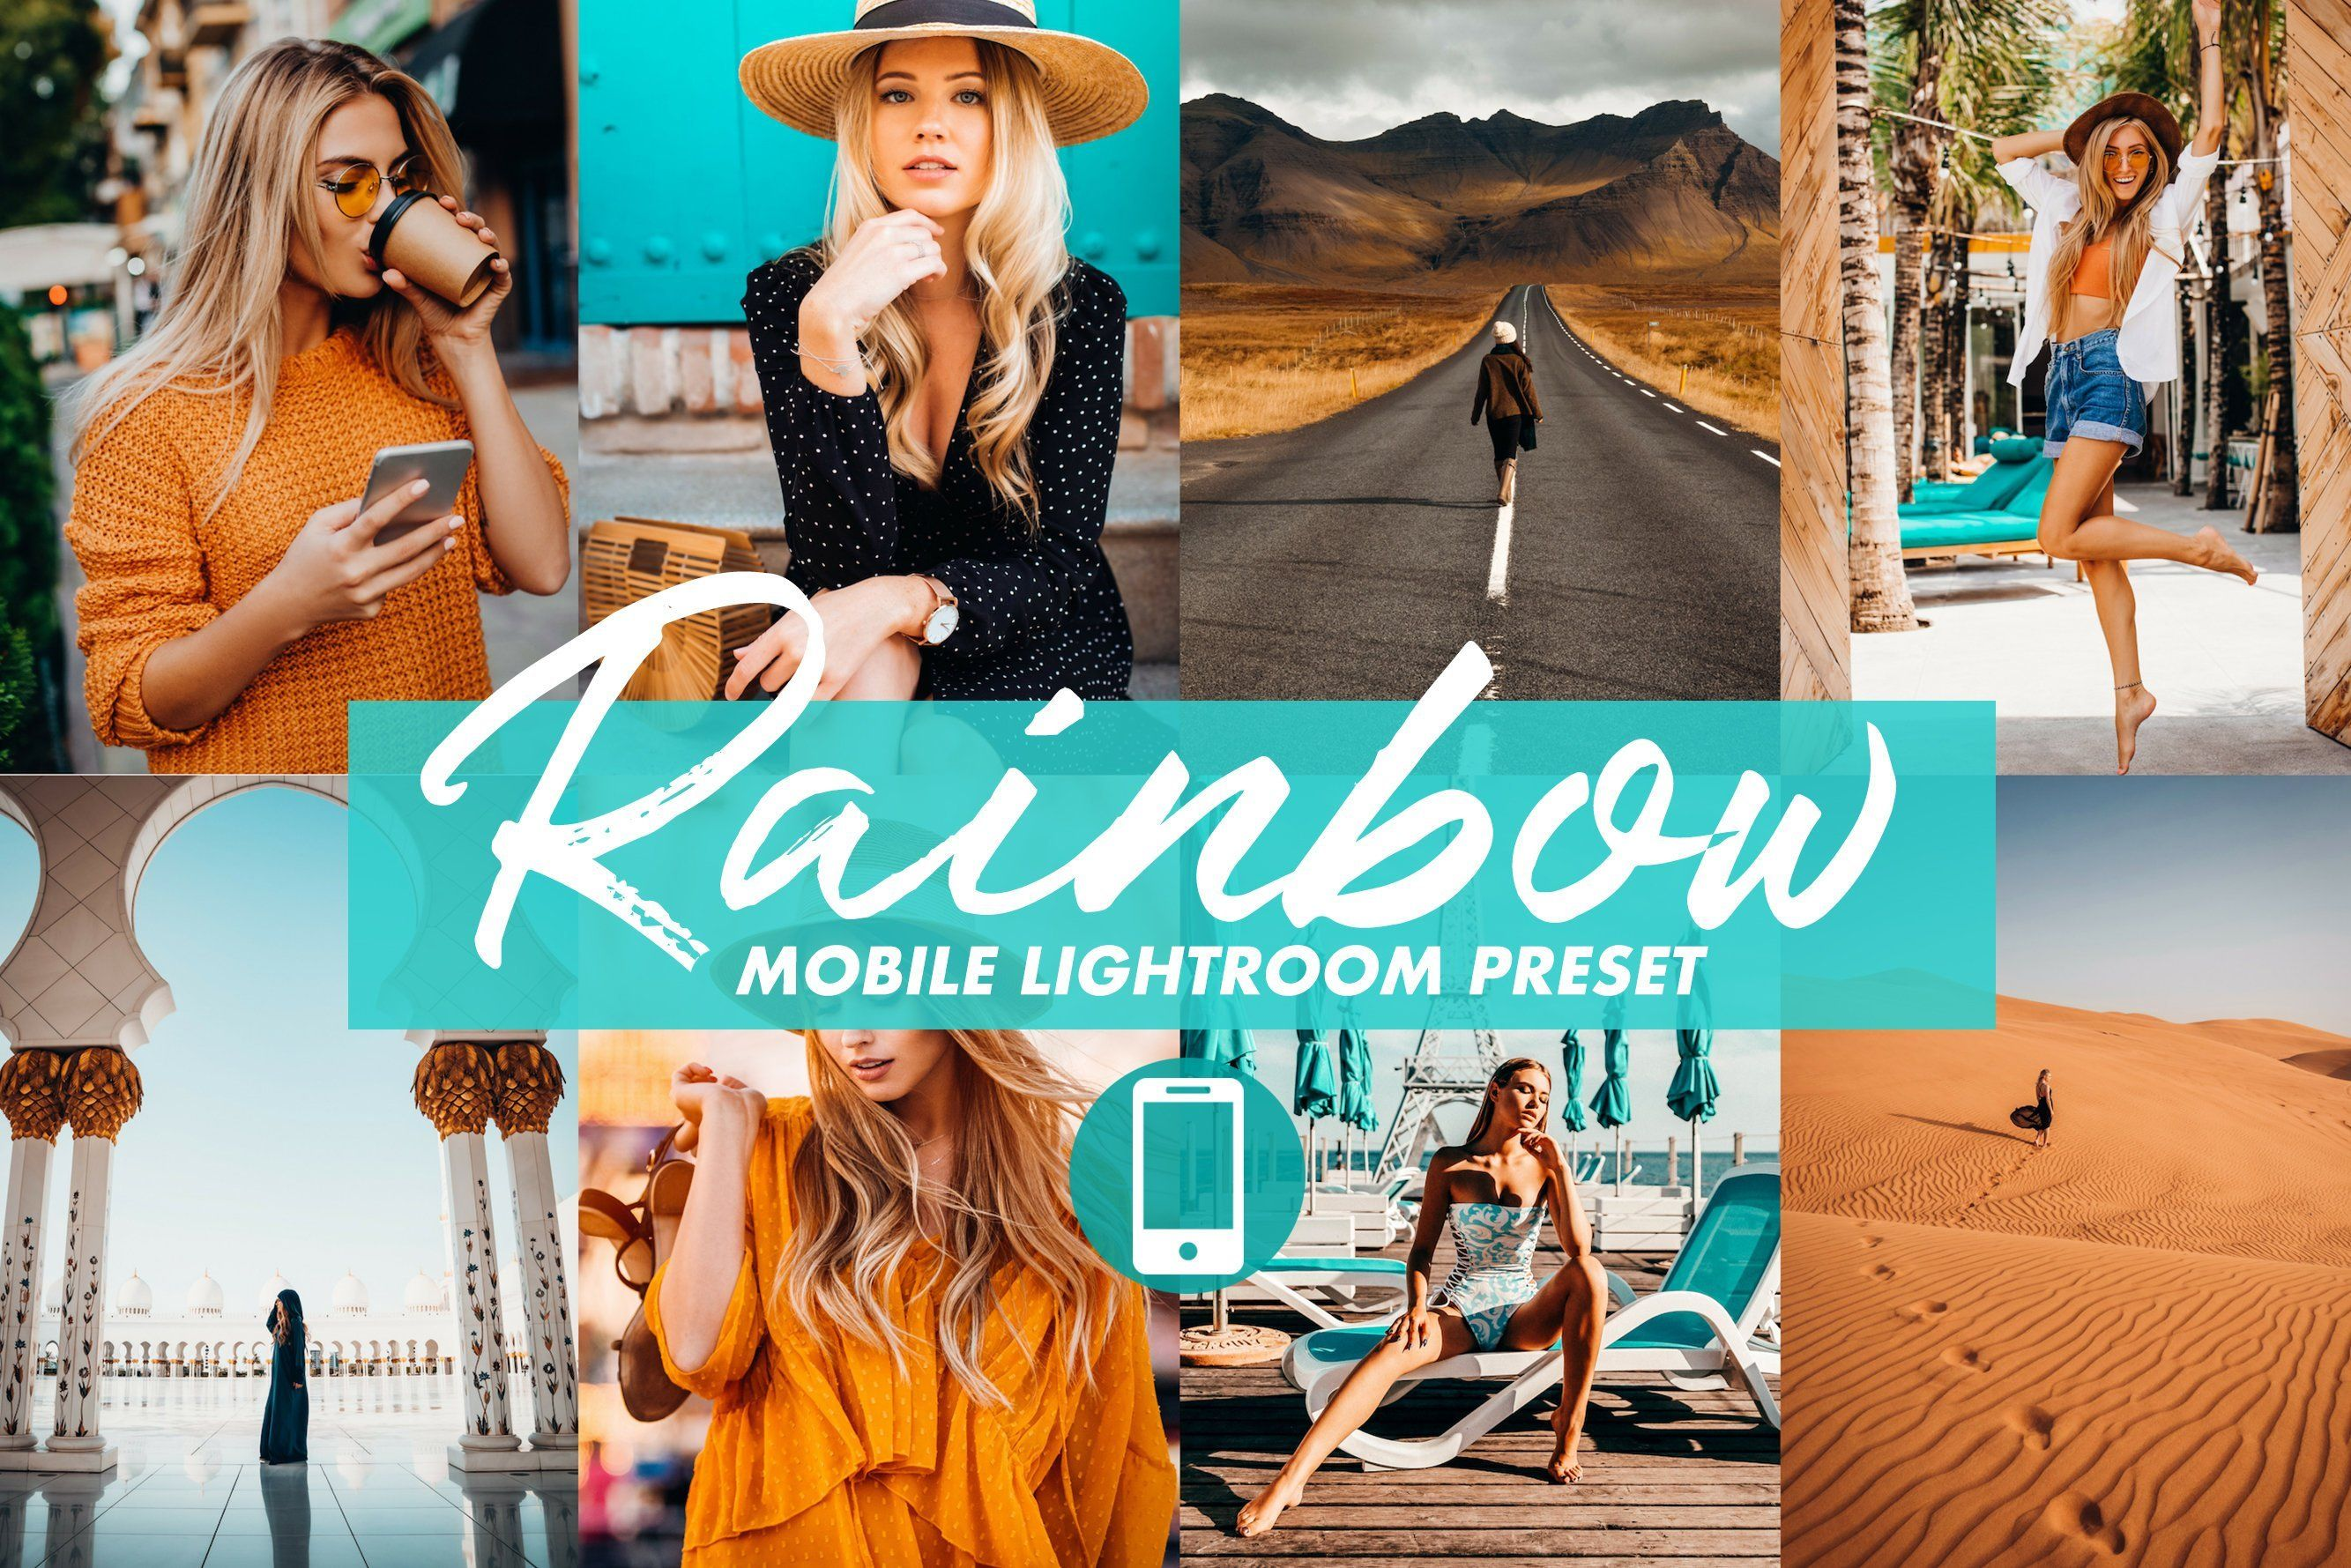 What Are The Most Popular Lightroom Presets